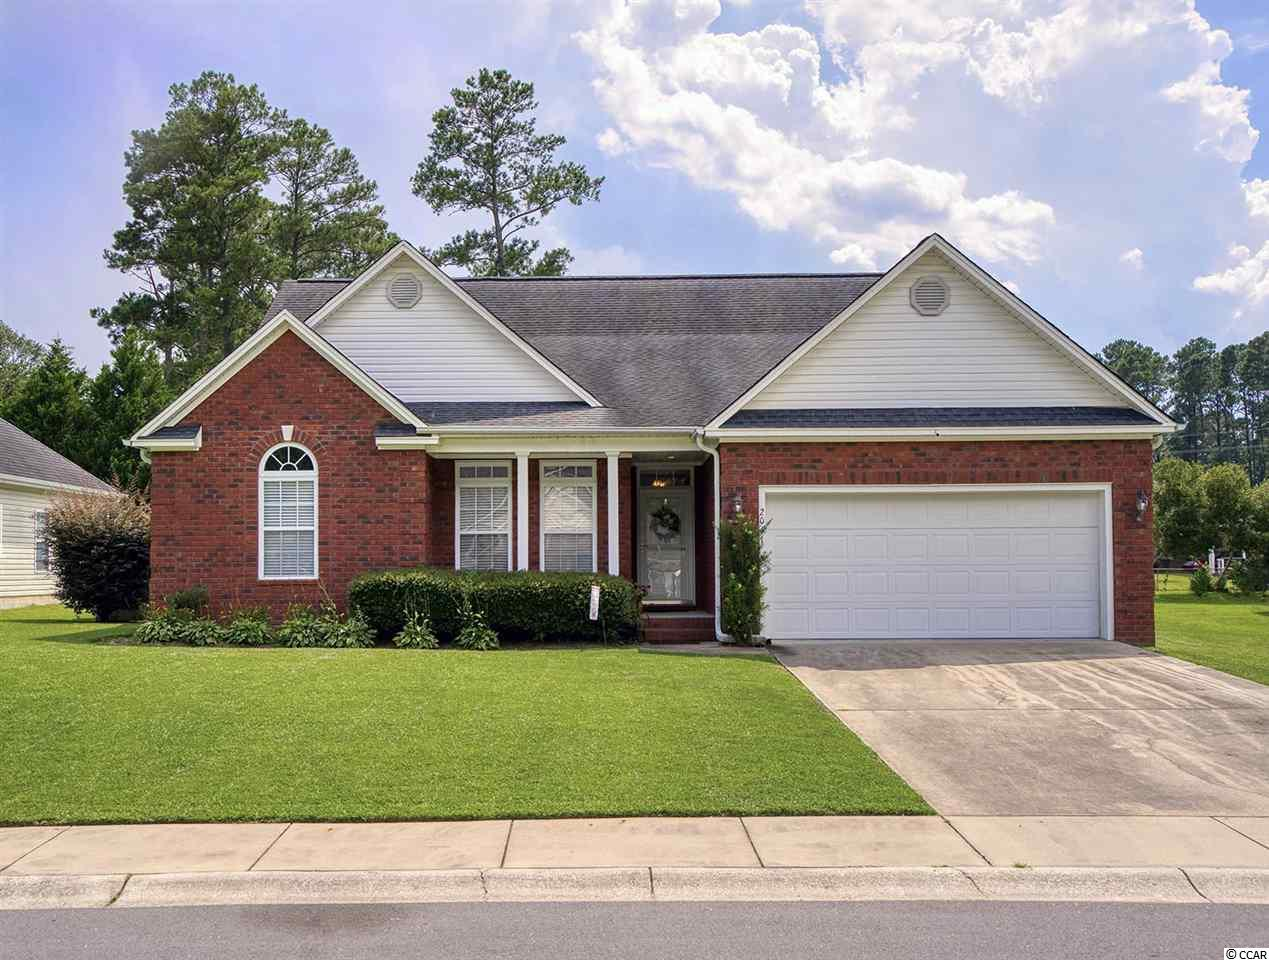 This traditional brick front home is in the quiet neighborhood of Magnolia Bay minutes from downtown Conway. You will be impressed the moment you enter the neighborhood. There are sidewalks in the community to ensure you and your family's safety while you are out strolling through the community. Upon entering the home, you will be greeted by a cathedral ceiling in the spacious living room. There are 3 bedrooms and 3 full bathrooms with a split floor plan which allows for extra privacy. One of the guest bedrooms would make a great in-law suite as it has its own bathroom. You will find many upgrades throughout the home. There is tile flooring in the bathrooms and kitchen, and wood flooring in the living and formal dining area. A screened porch, a gas fireplace, a fenced backyard, doubled garage and a deck for entertaining.